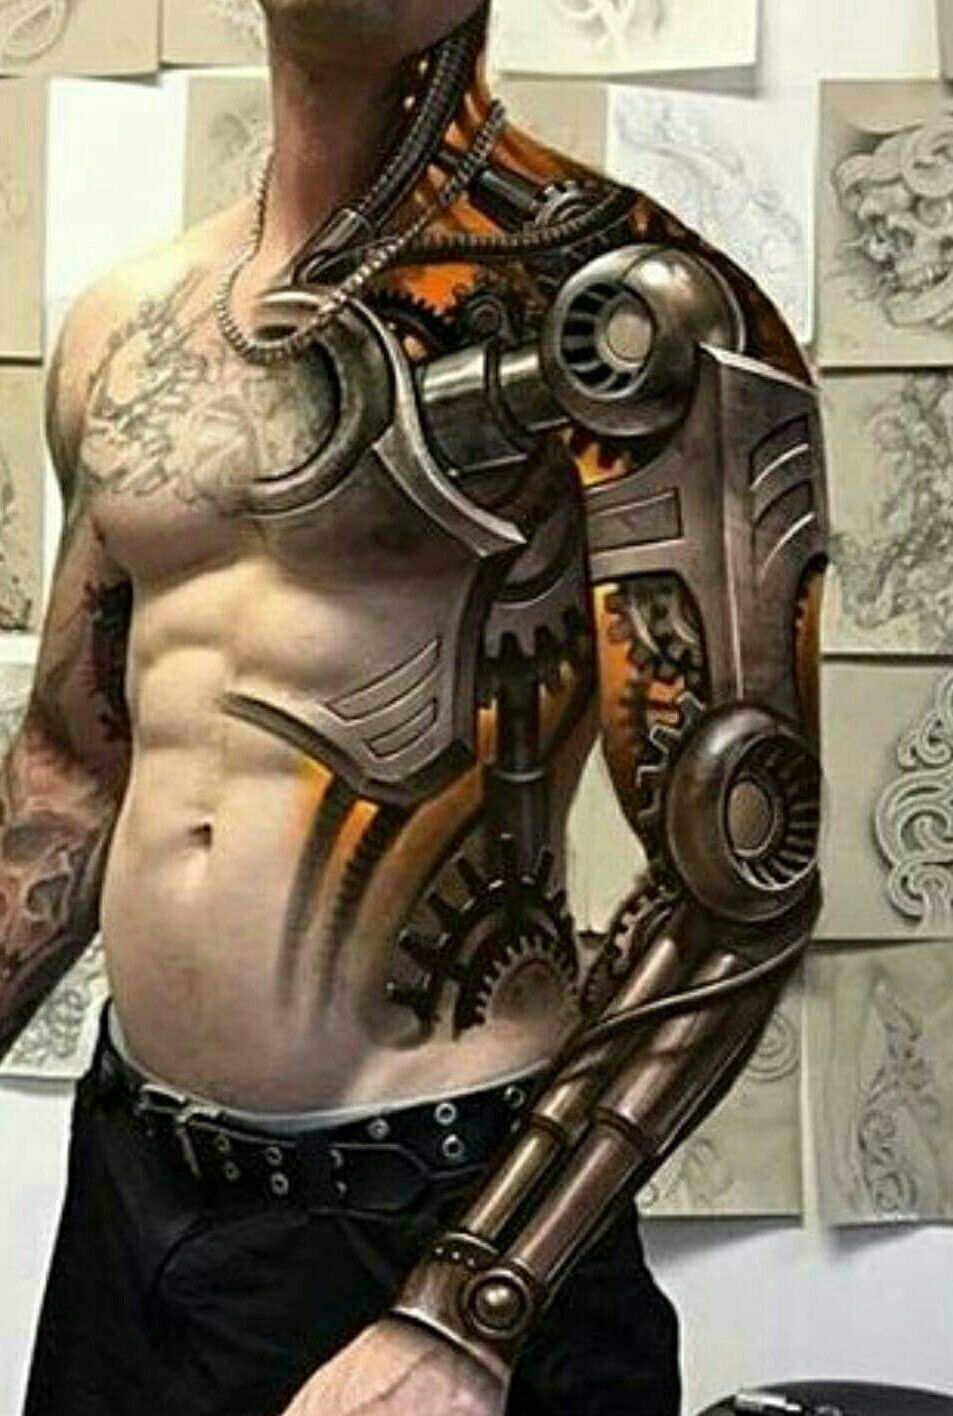 Tattoos Ssg Robot Tattoo Biomechanical Tattoo Tattoos Ideas And Designs